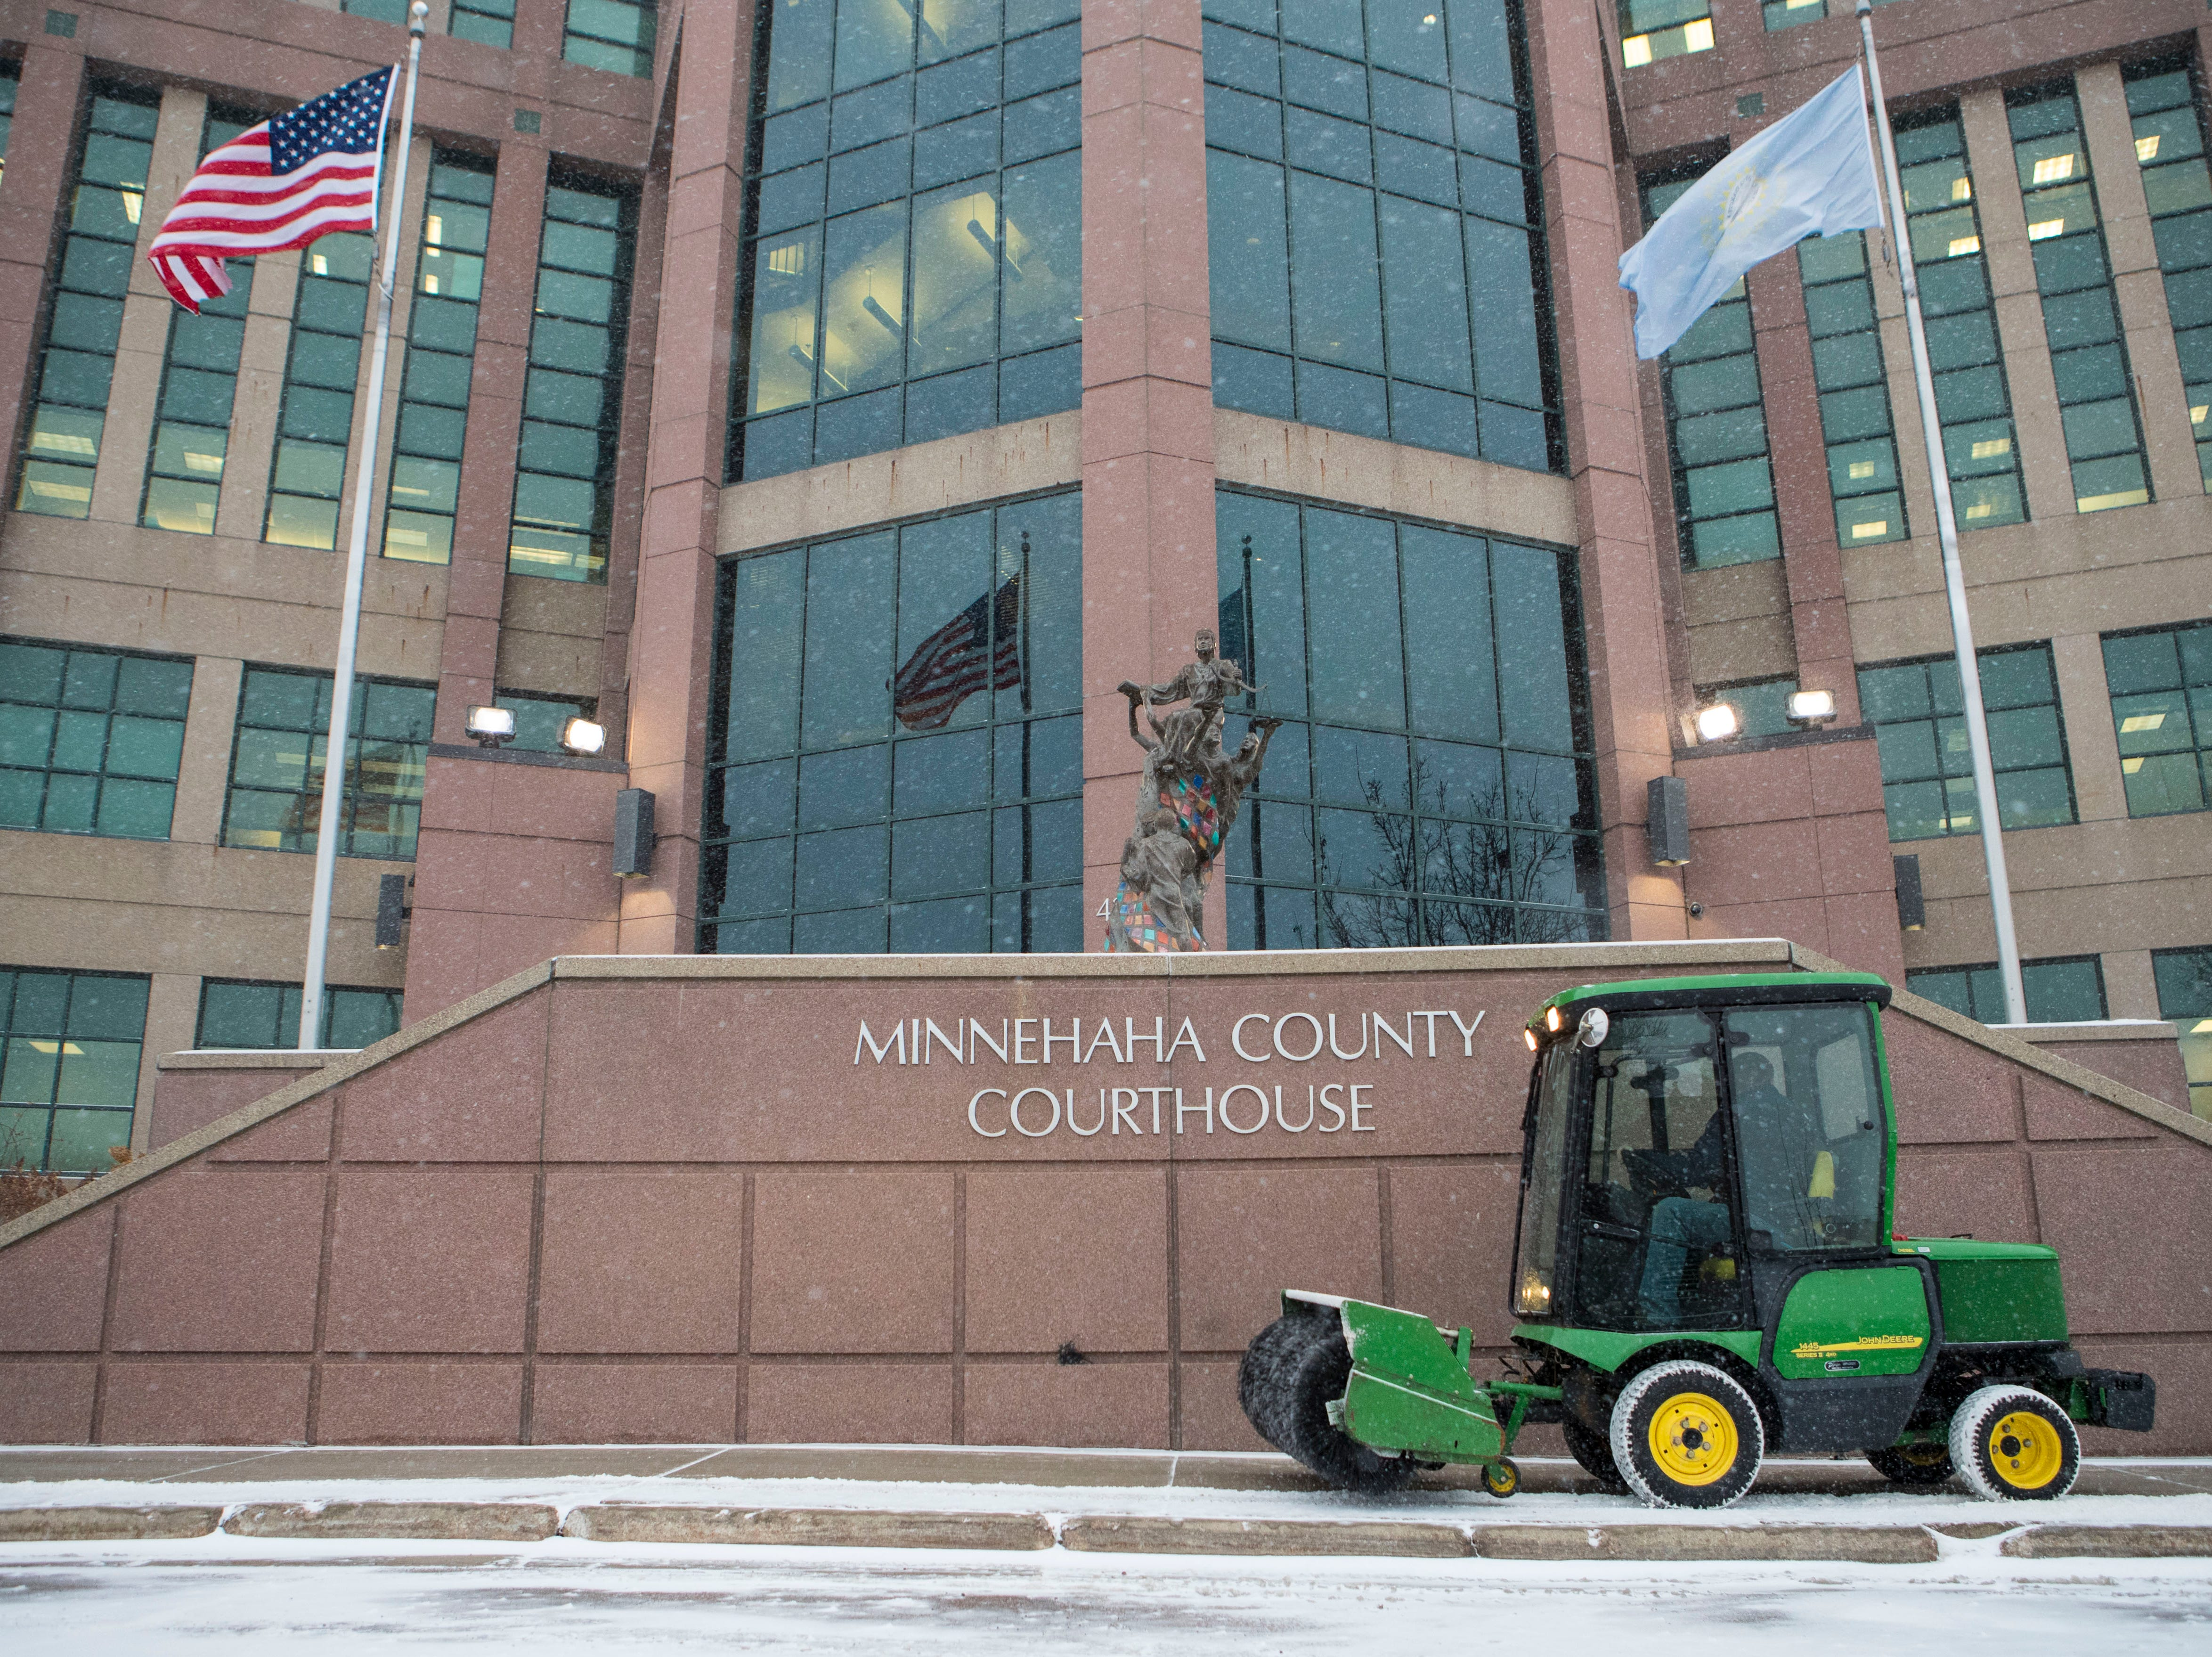 Man plows the Minnehaha County Courthouse sidewalk in Sioux Falls, S.D., Friday, Jan. 18, 2019.